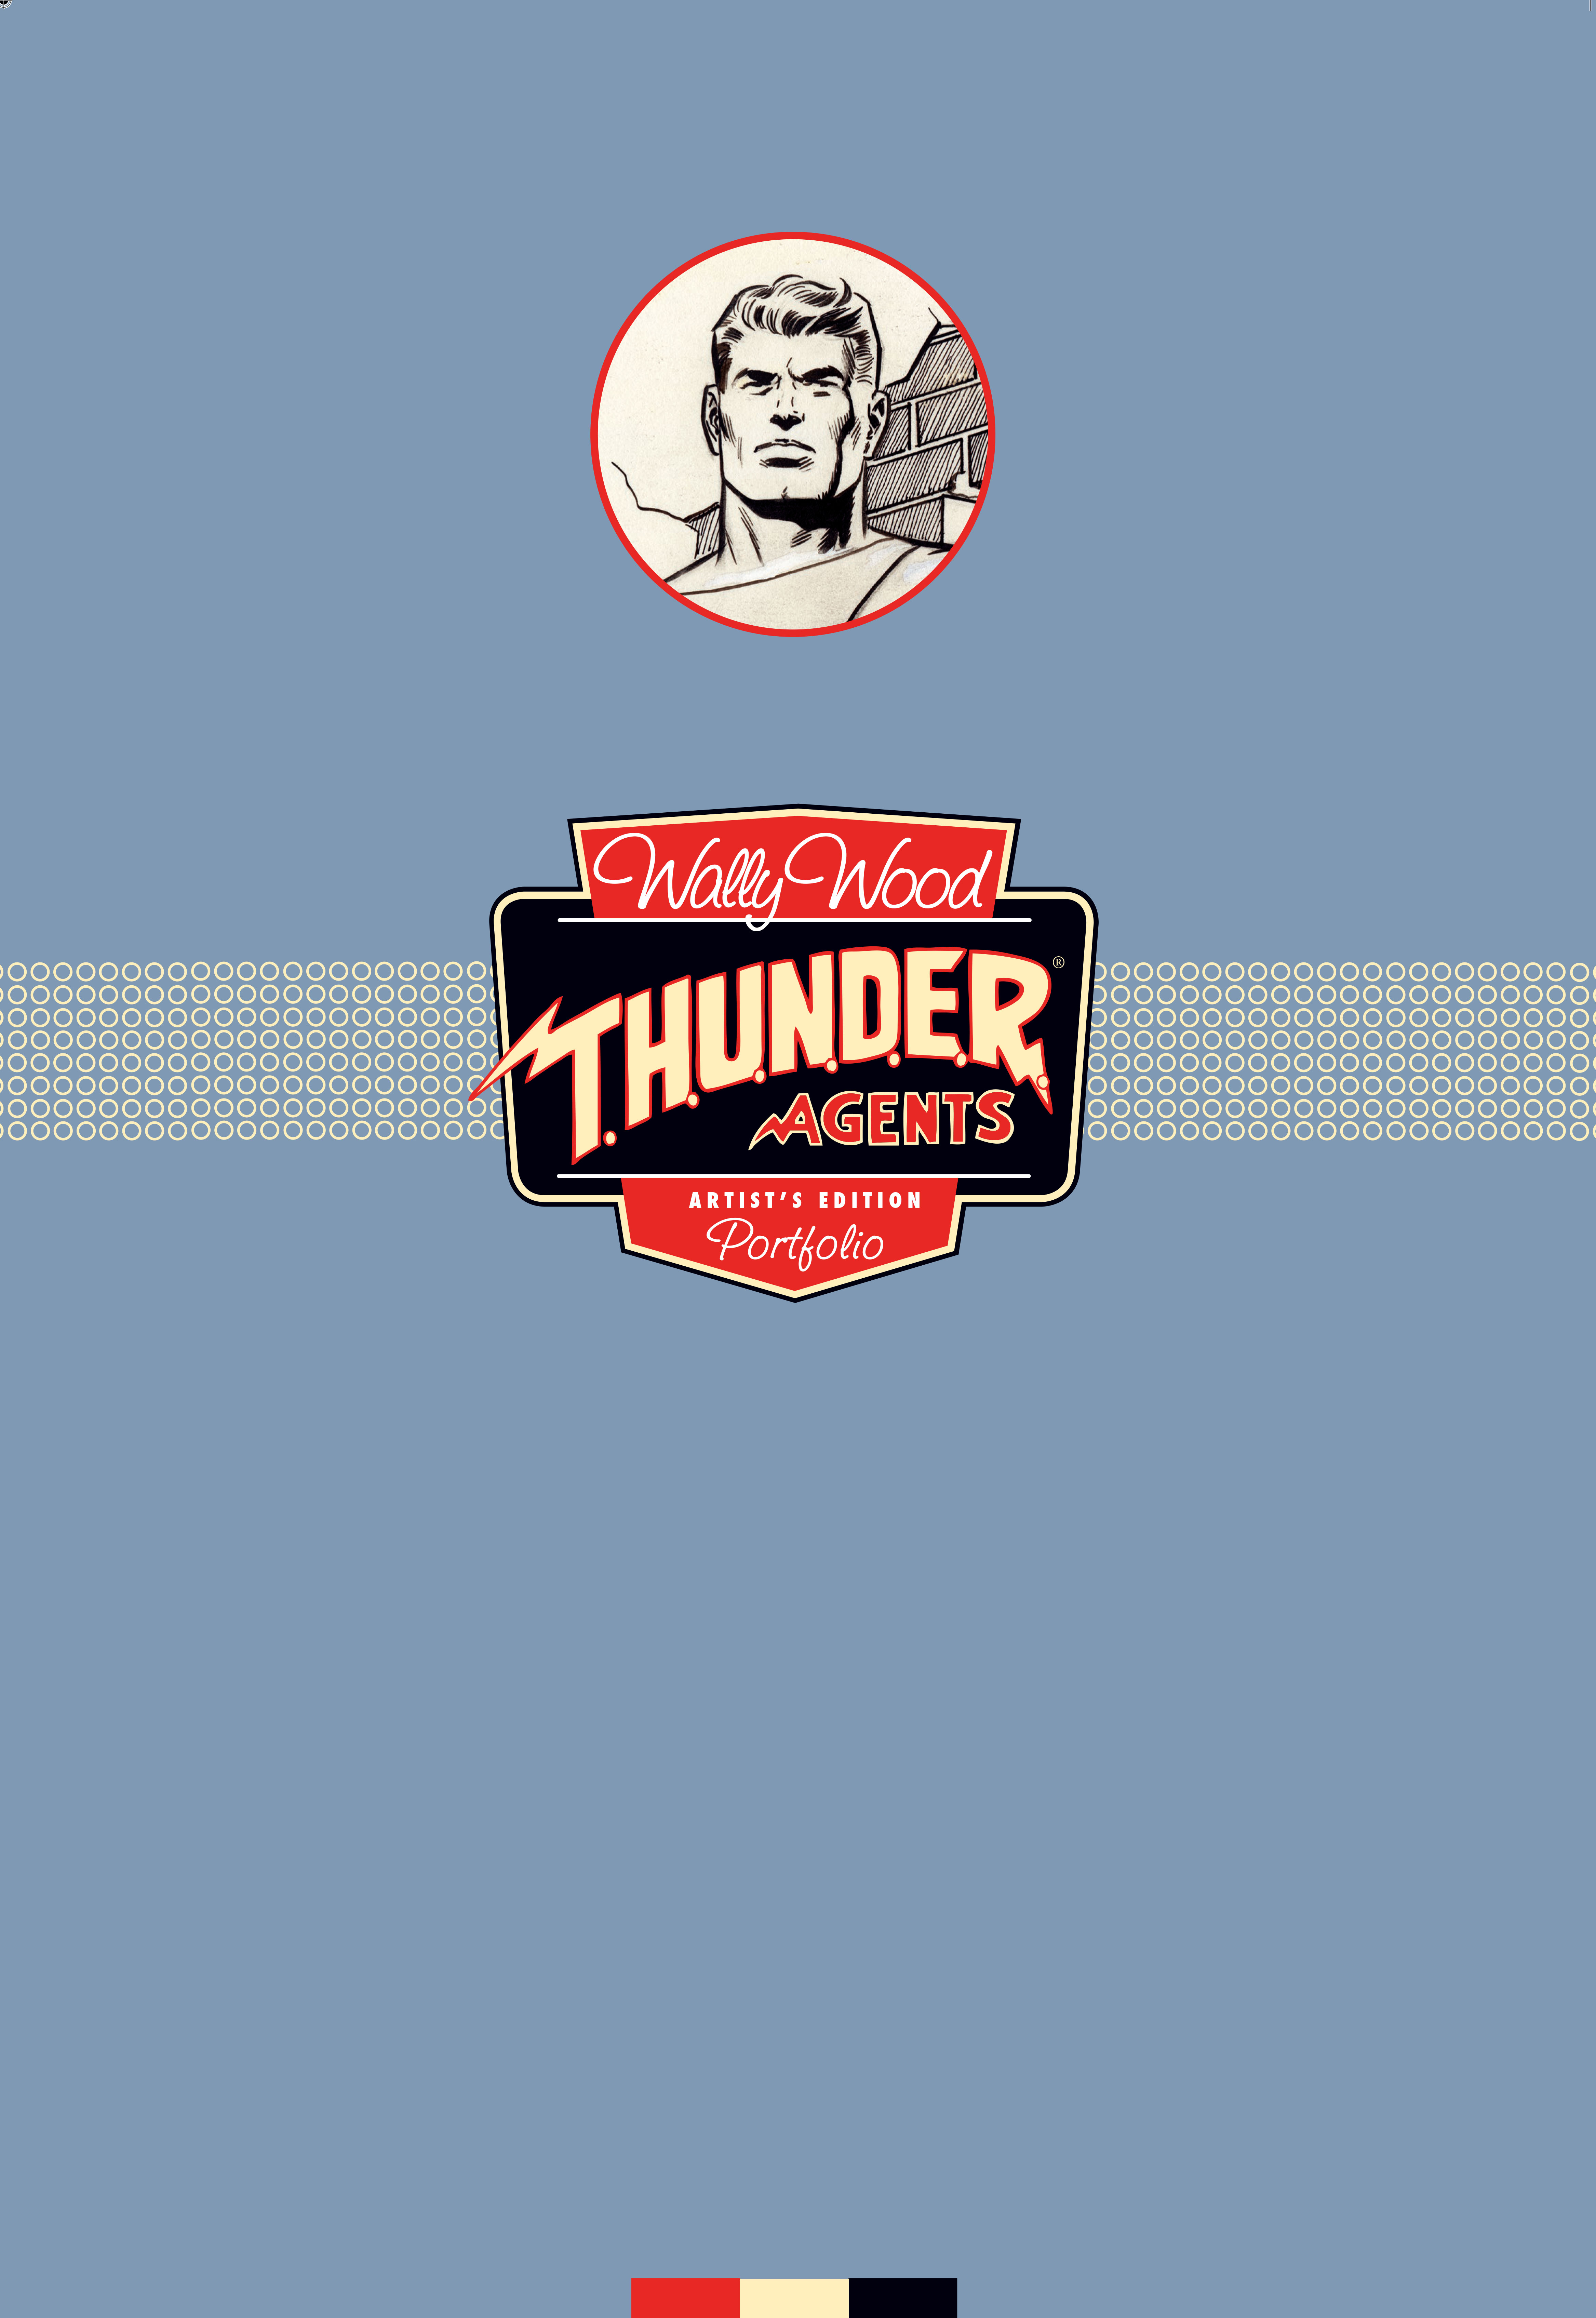 WALLY WOOD THUNDER AGENTS ARTIST ED PORTFOLIO ED